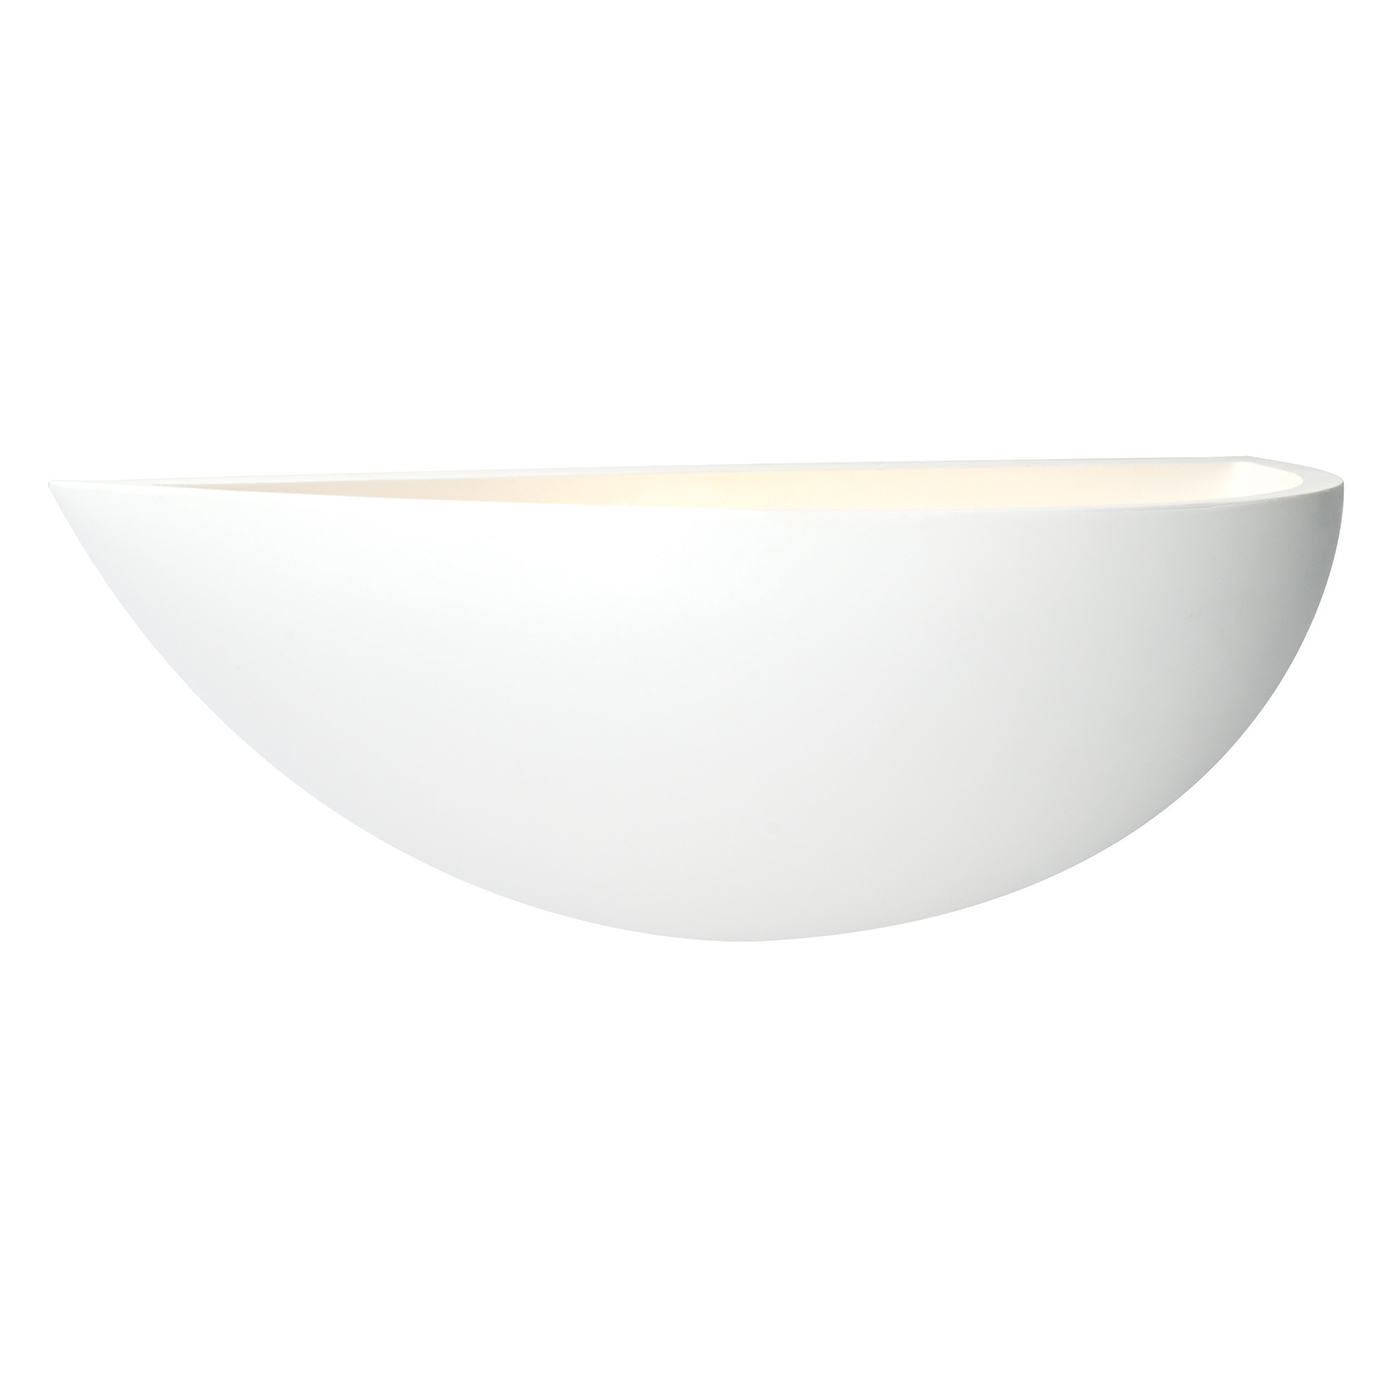 Endon Mini crescent 1lt wall uplighter 40W White plaster Thumbnail 1